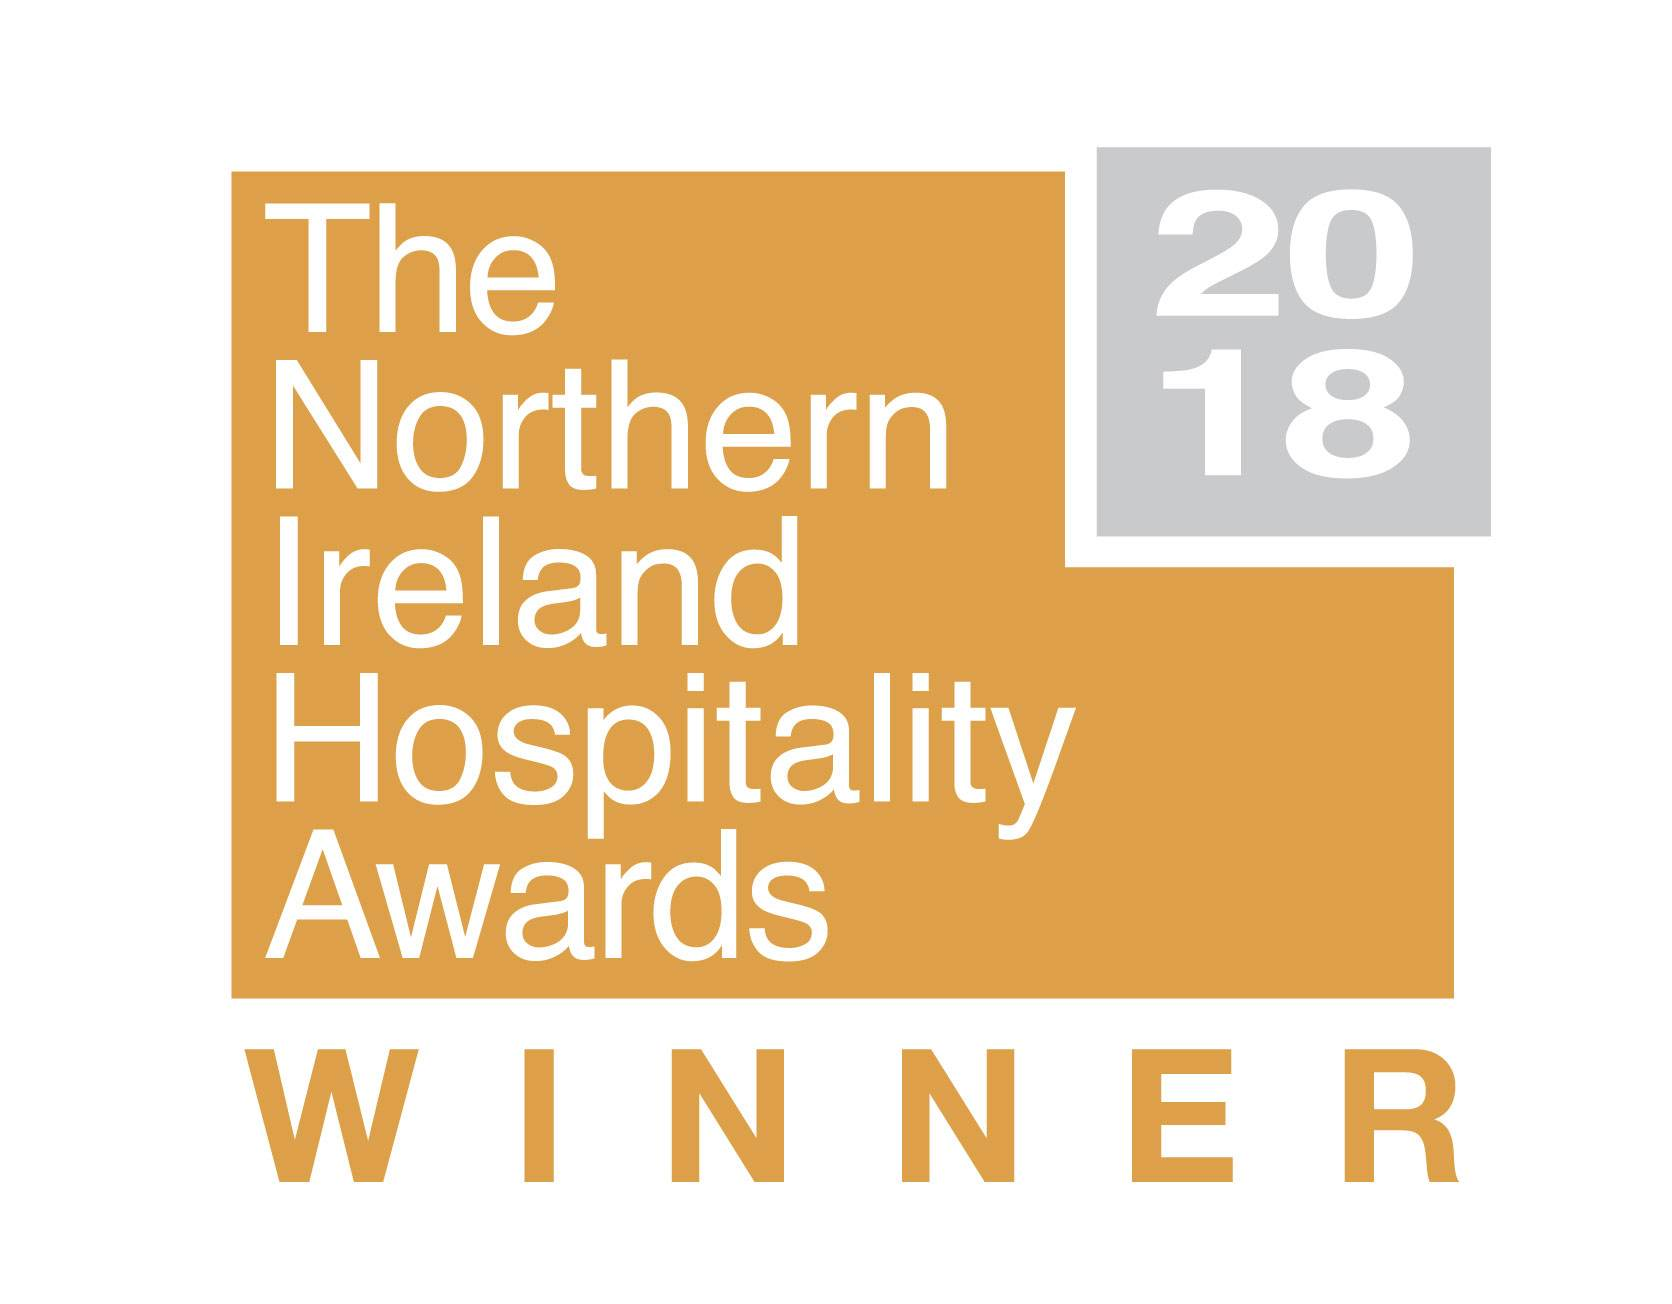 2018 Northern Ireland Hospitality Awards